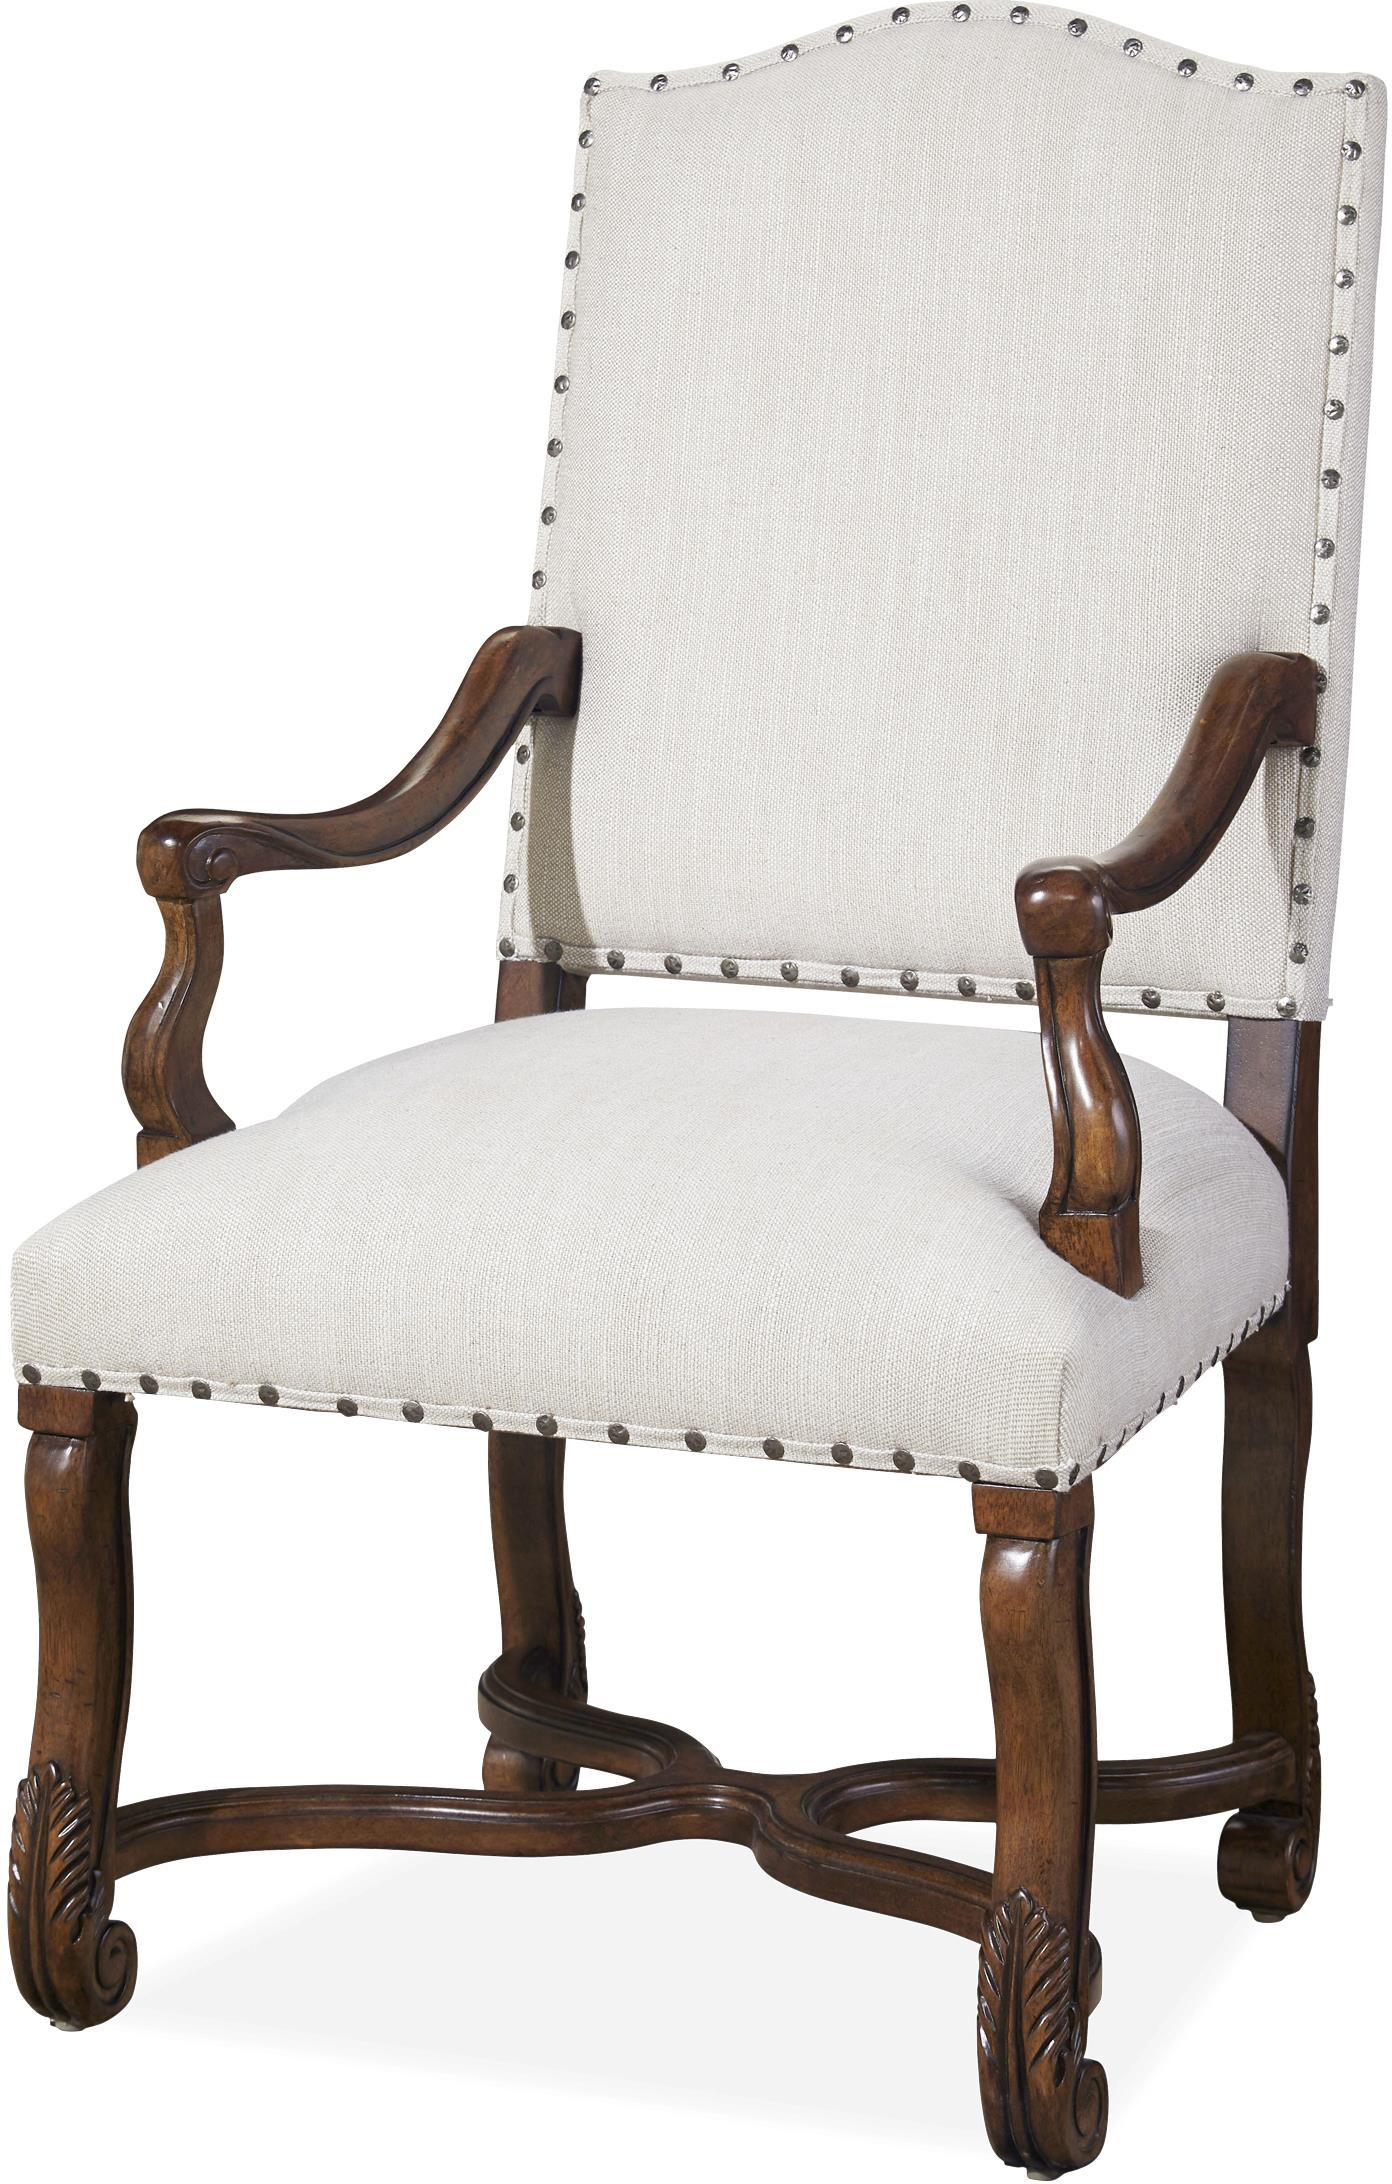 Paula Deen DarlingDarling Hostess Chair ...